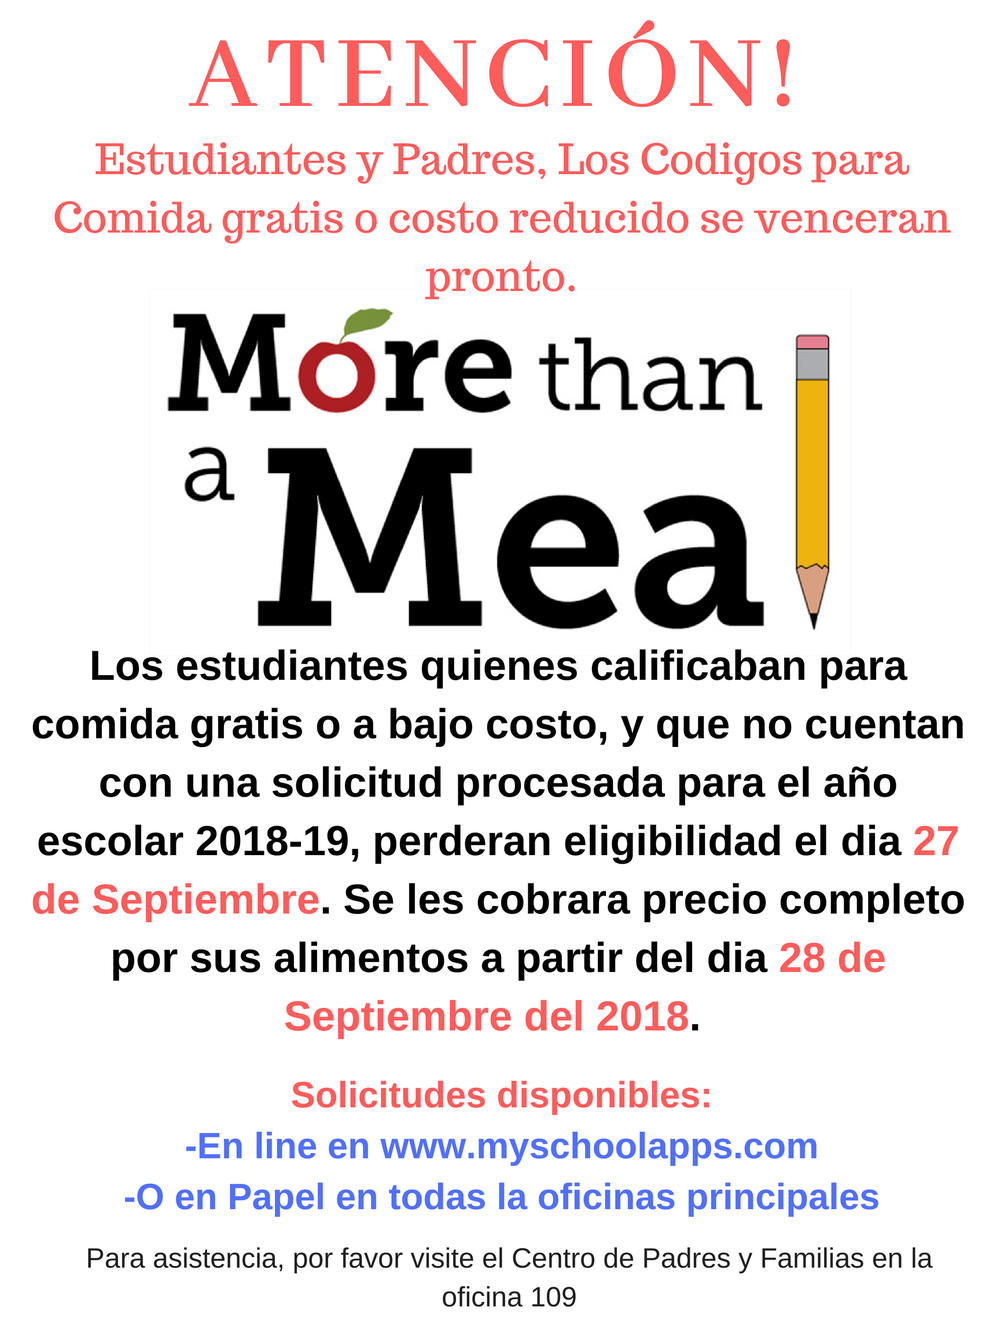 More than a meal spanish